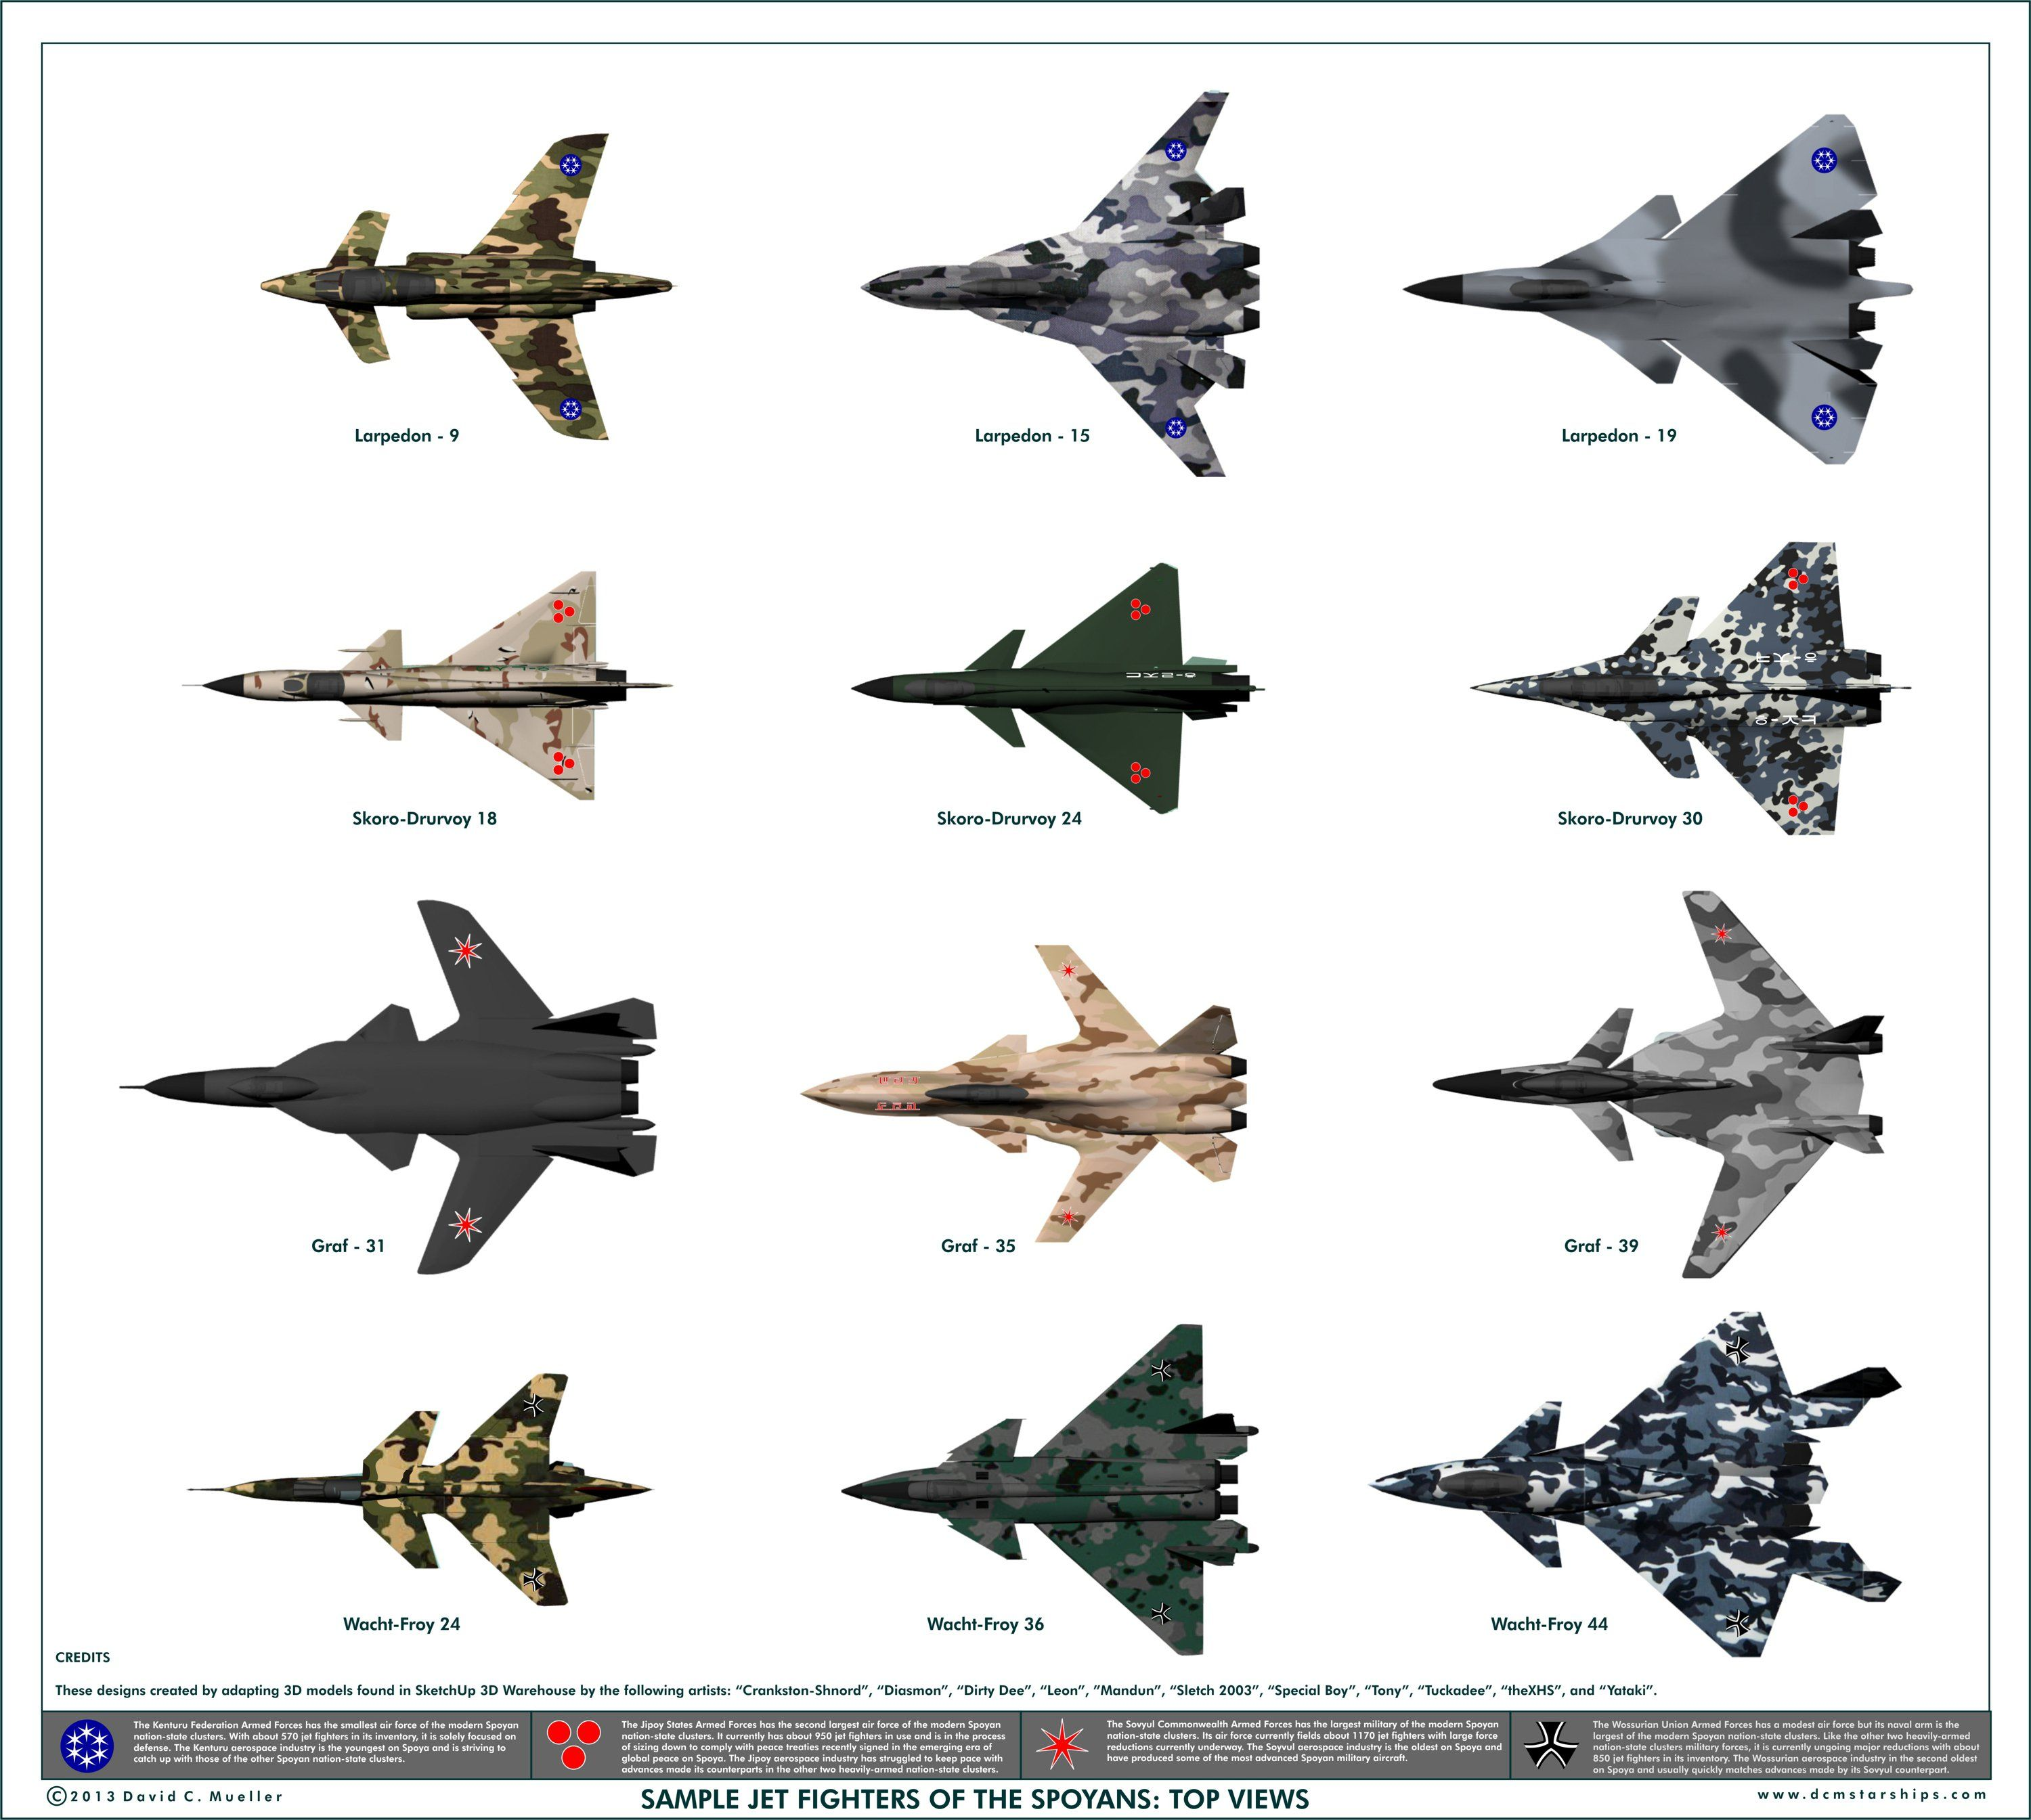 different types of military helicopters with 825003225458884456 on Feijidetupian moreover 741567641391878144 furthermore Stock Vector Different Types Of Helicopters Vector Illustration as well China Liaoning Aircraft Carrier Vs Nimitz Kuz sov 2016 11 together with Windows 10 Tank Games.